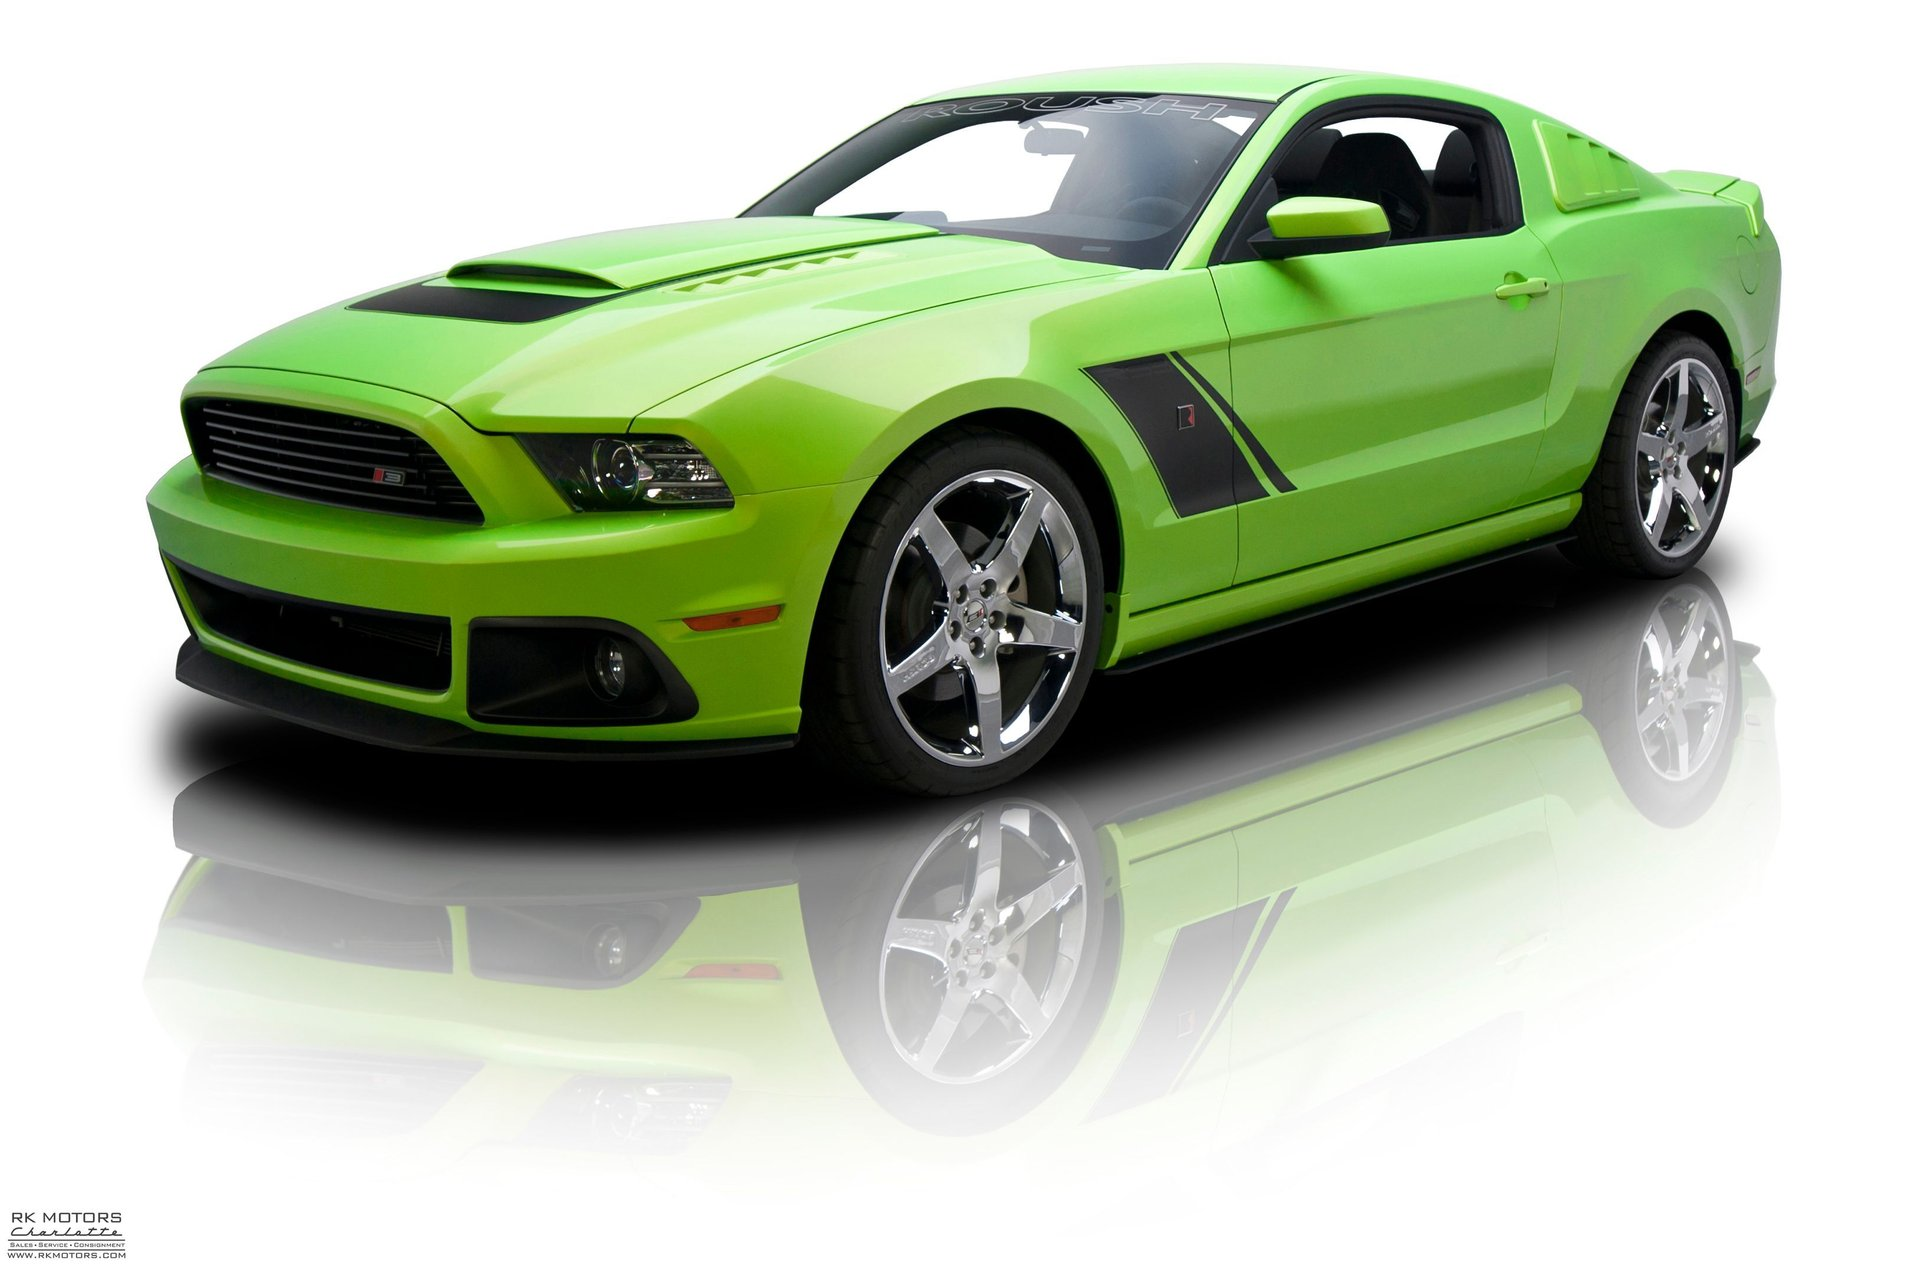 881 actual mile roush stage 3 5 0l supercharged 6 speed